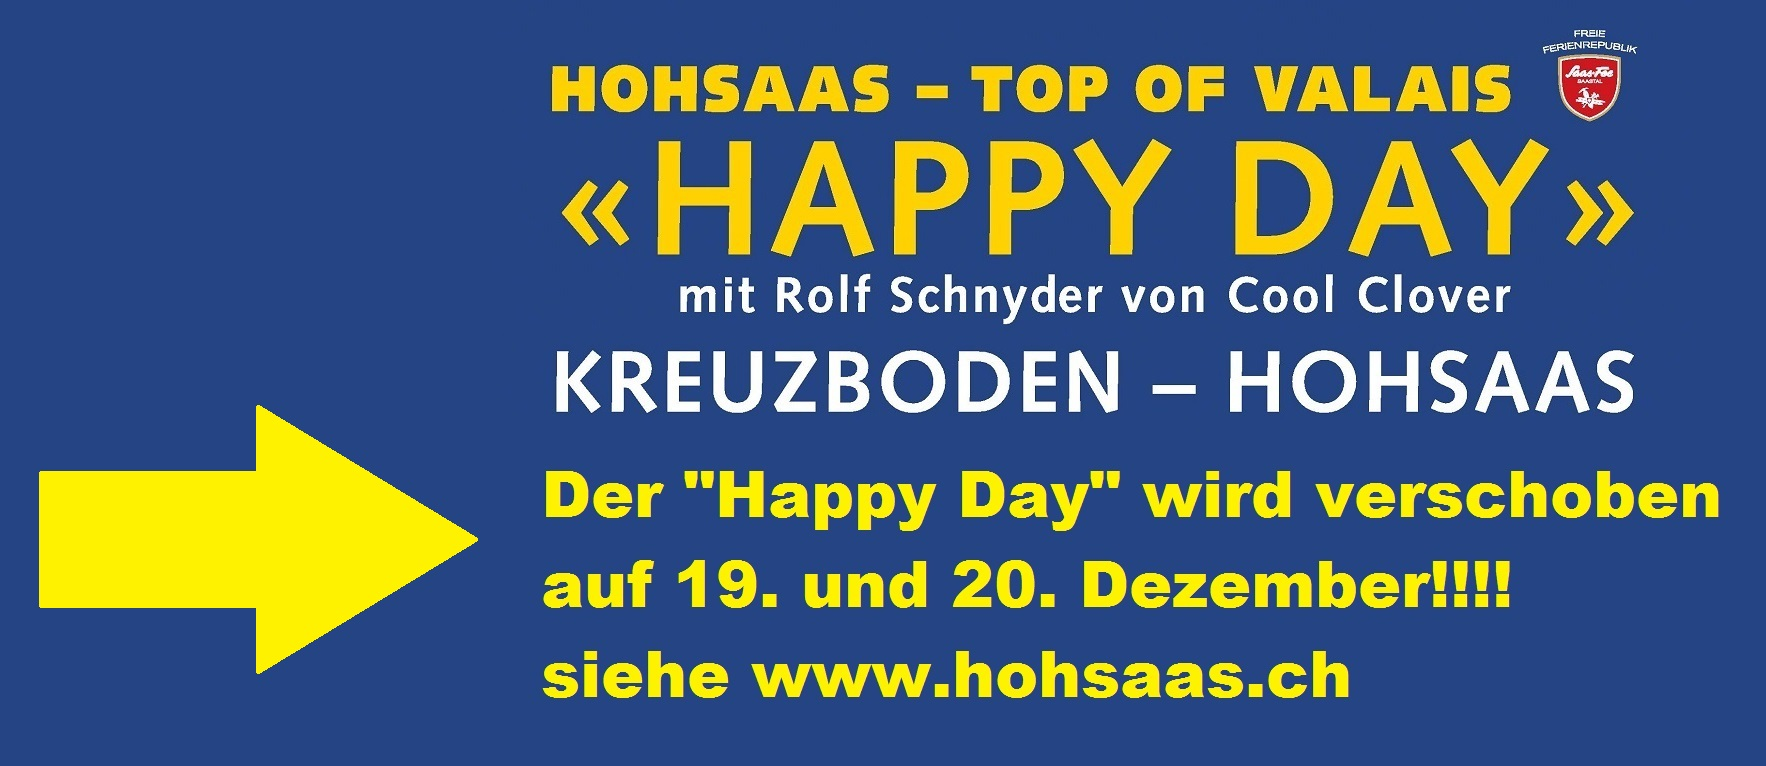 Happy-Day-Hohsaas-facebook